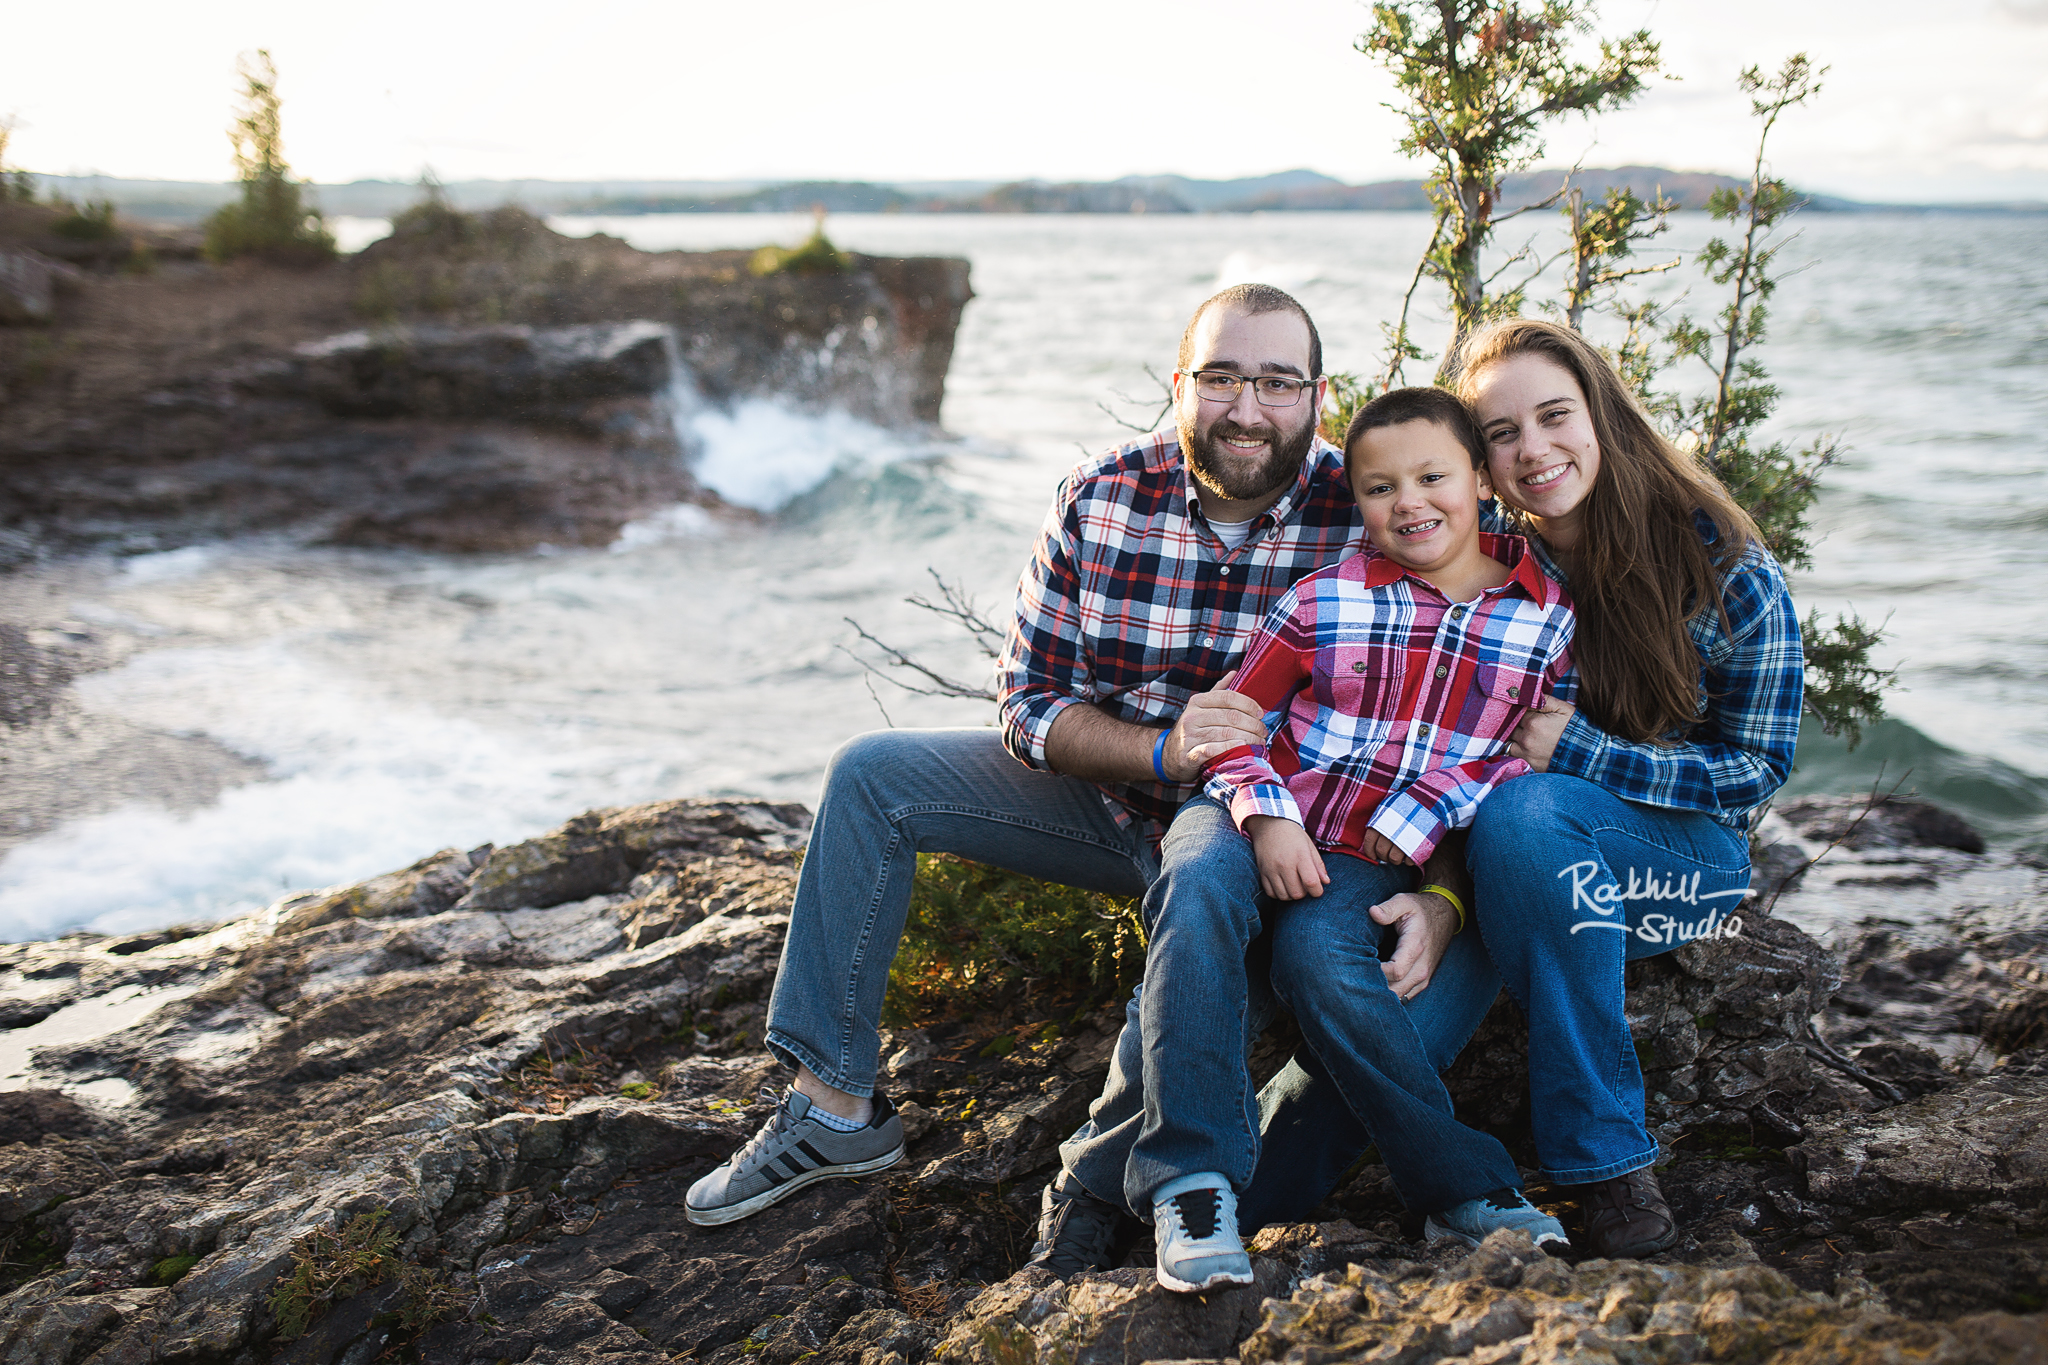 marquette-family-photographer-upper-peninsula-presque-isle-photography-rockhill-1a.jpg